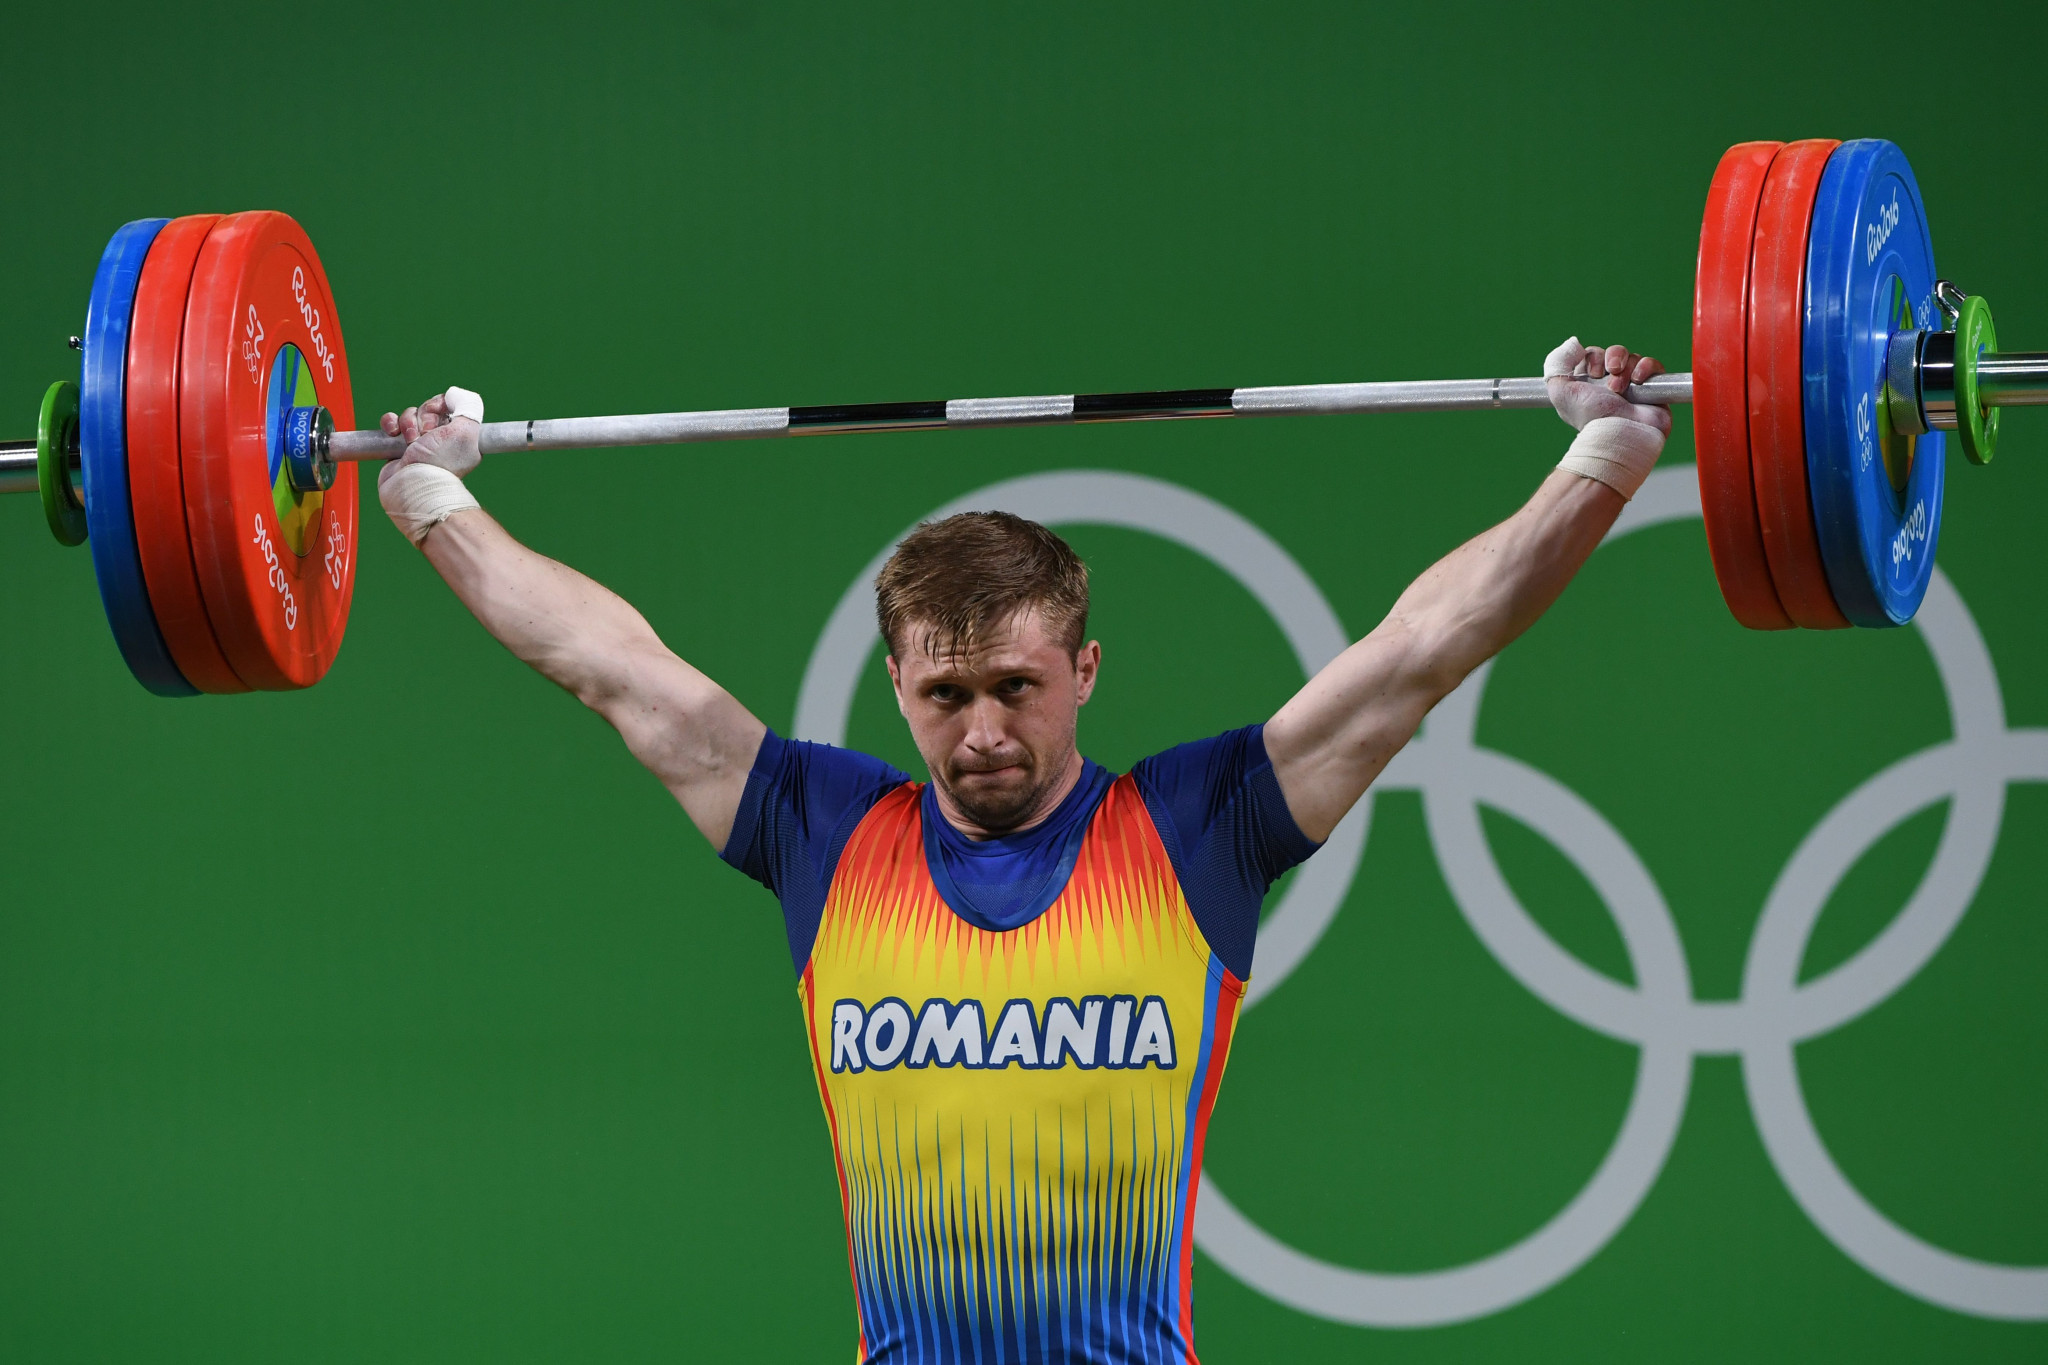 Gabriel Sincraian, who tested positive at two Olympic Games, is banned until 2027 ©Getty Images